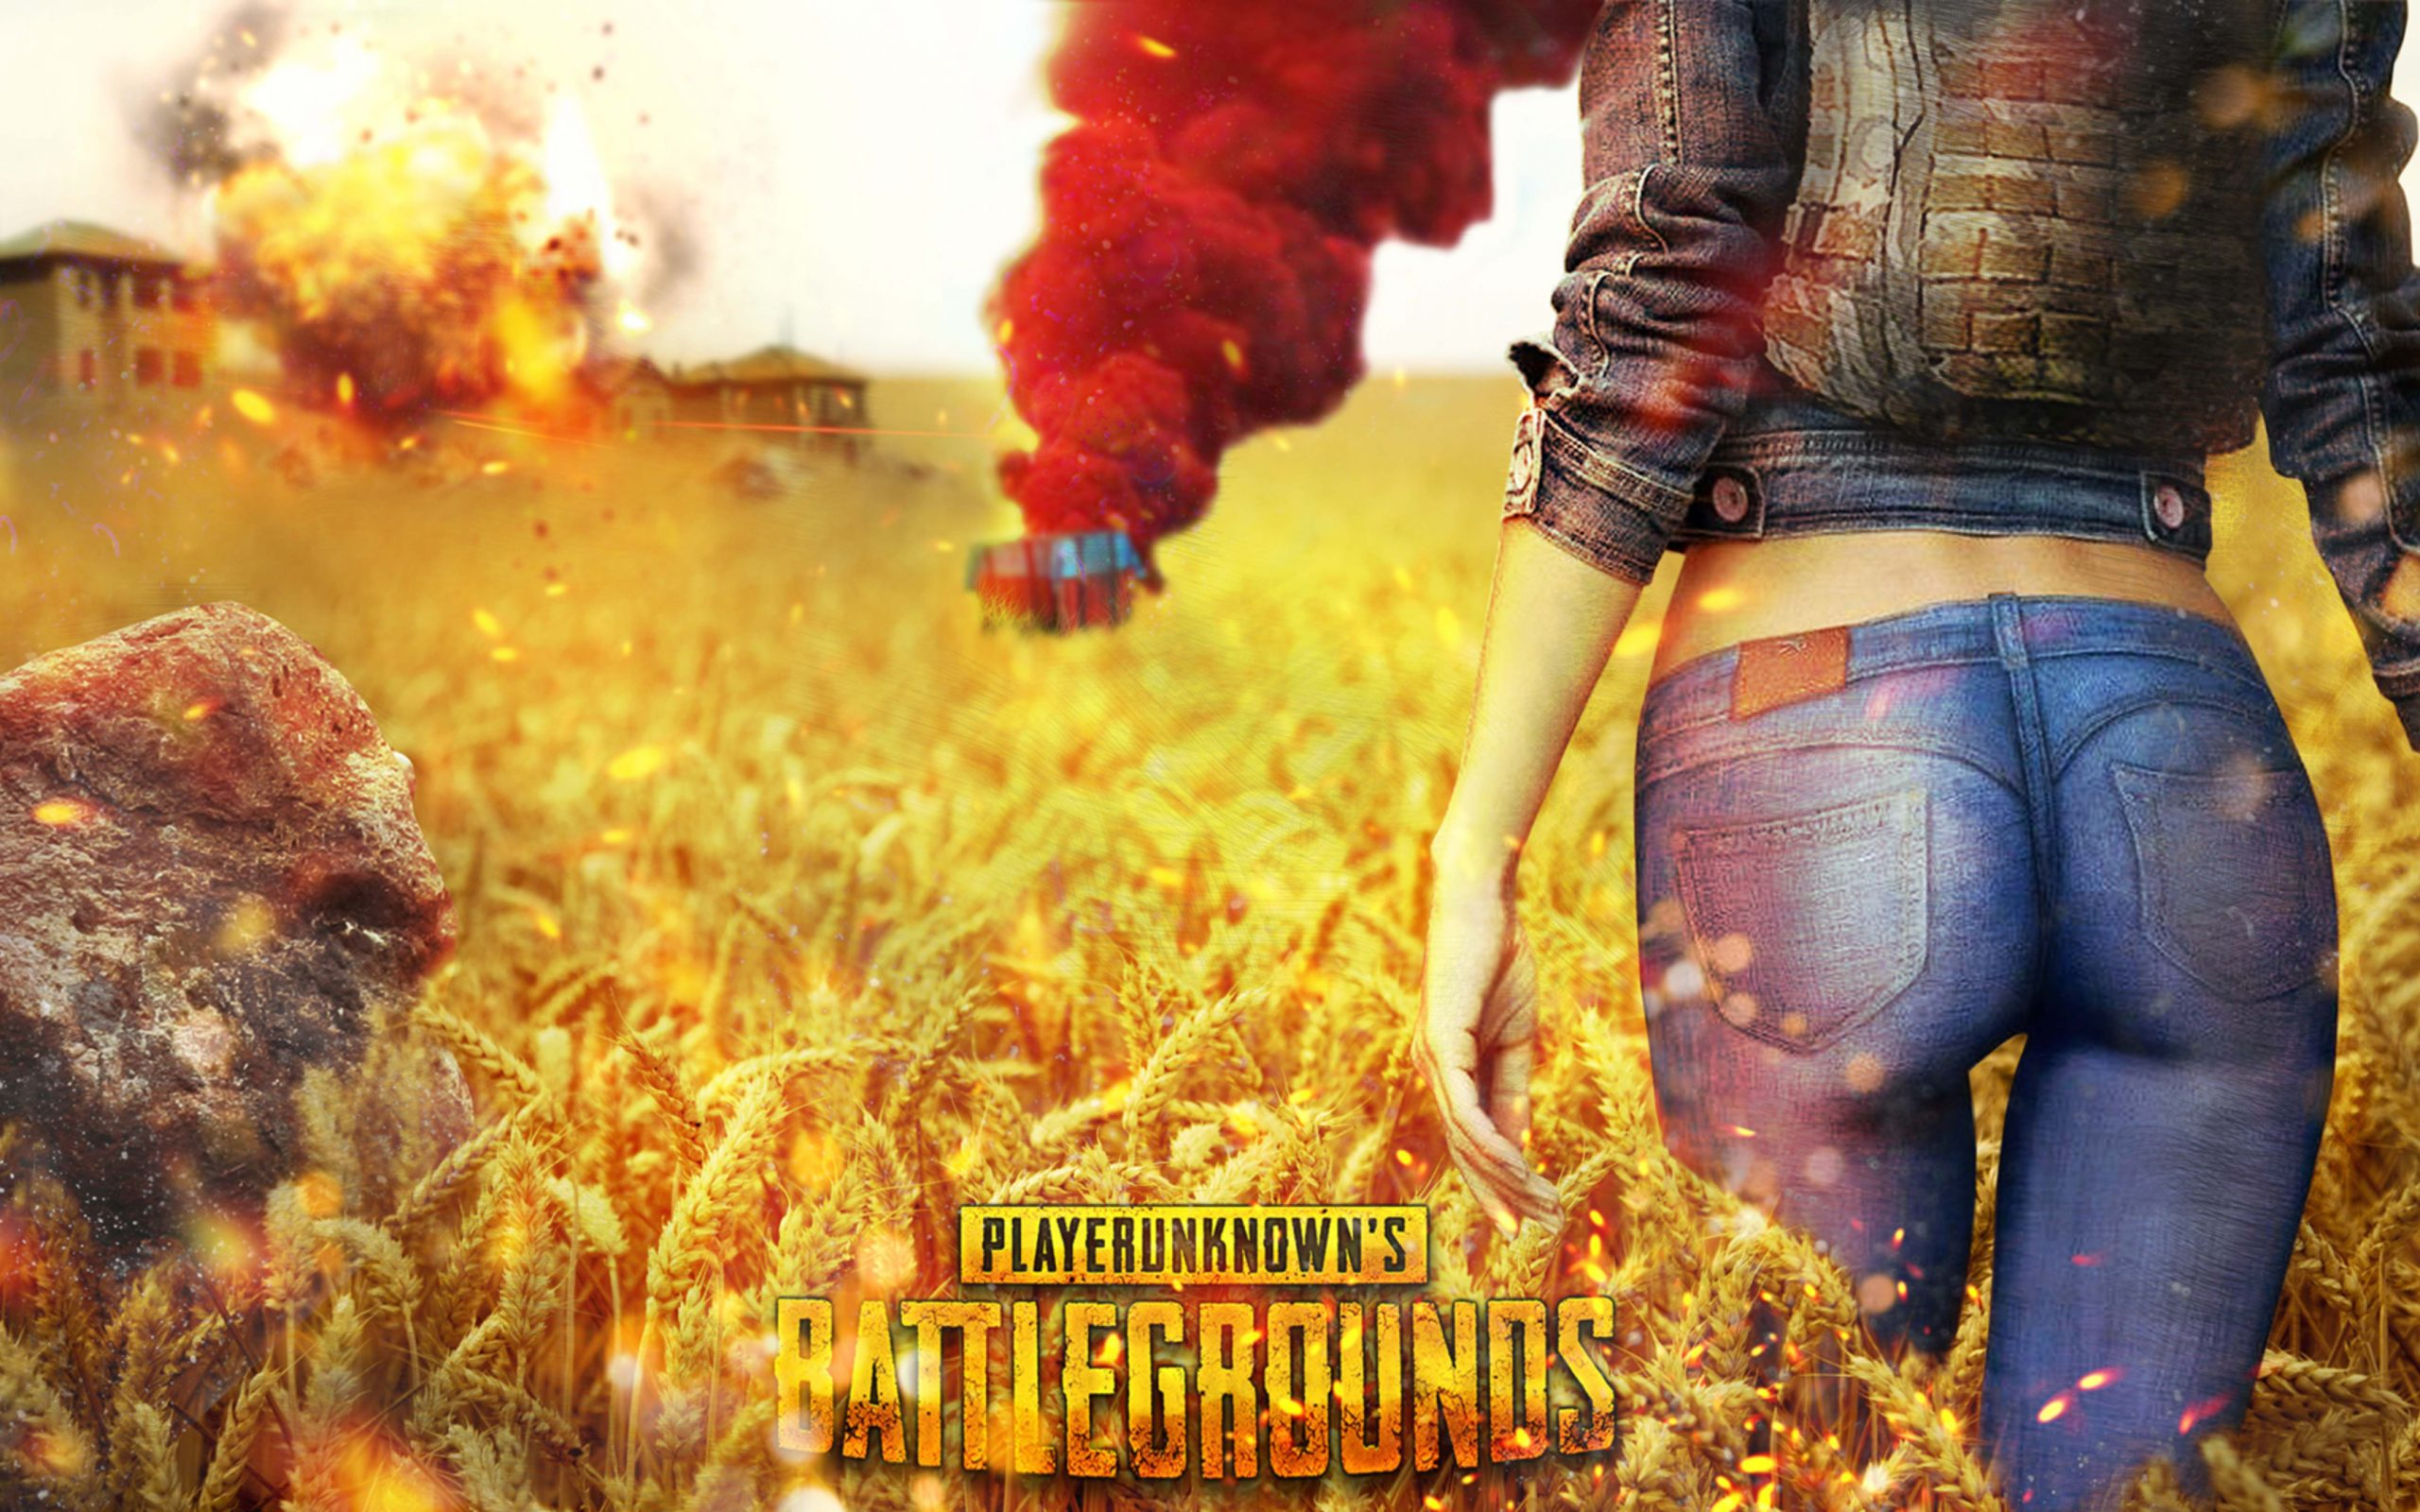 Top 13 Pubg Wallpapers In Full Hd For Pc And Phone: Playerunknowns Battlegrounds PUBG Cover 4K Wallpaper